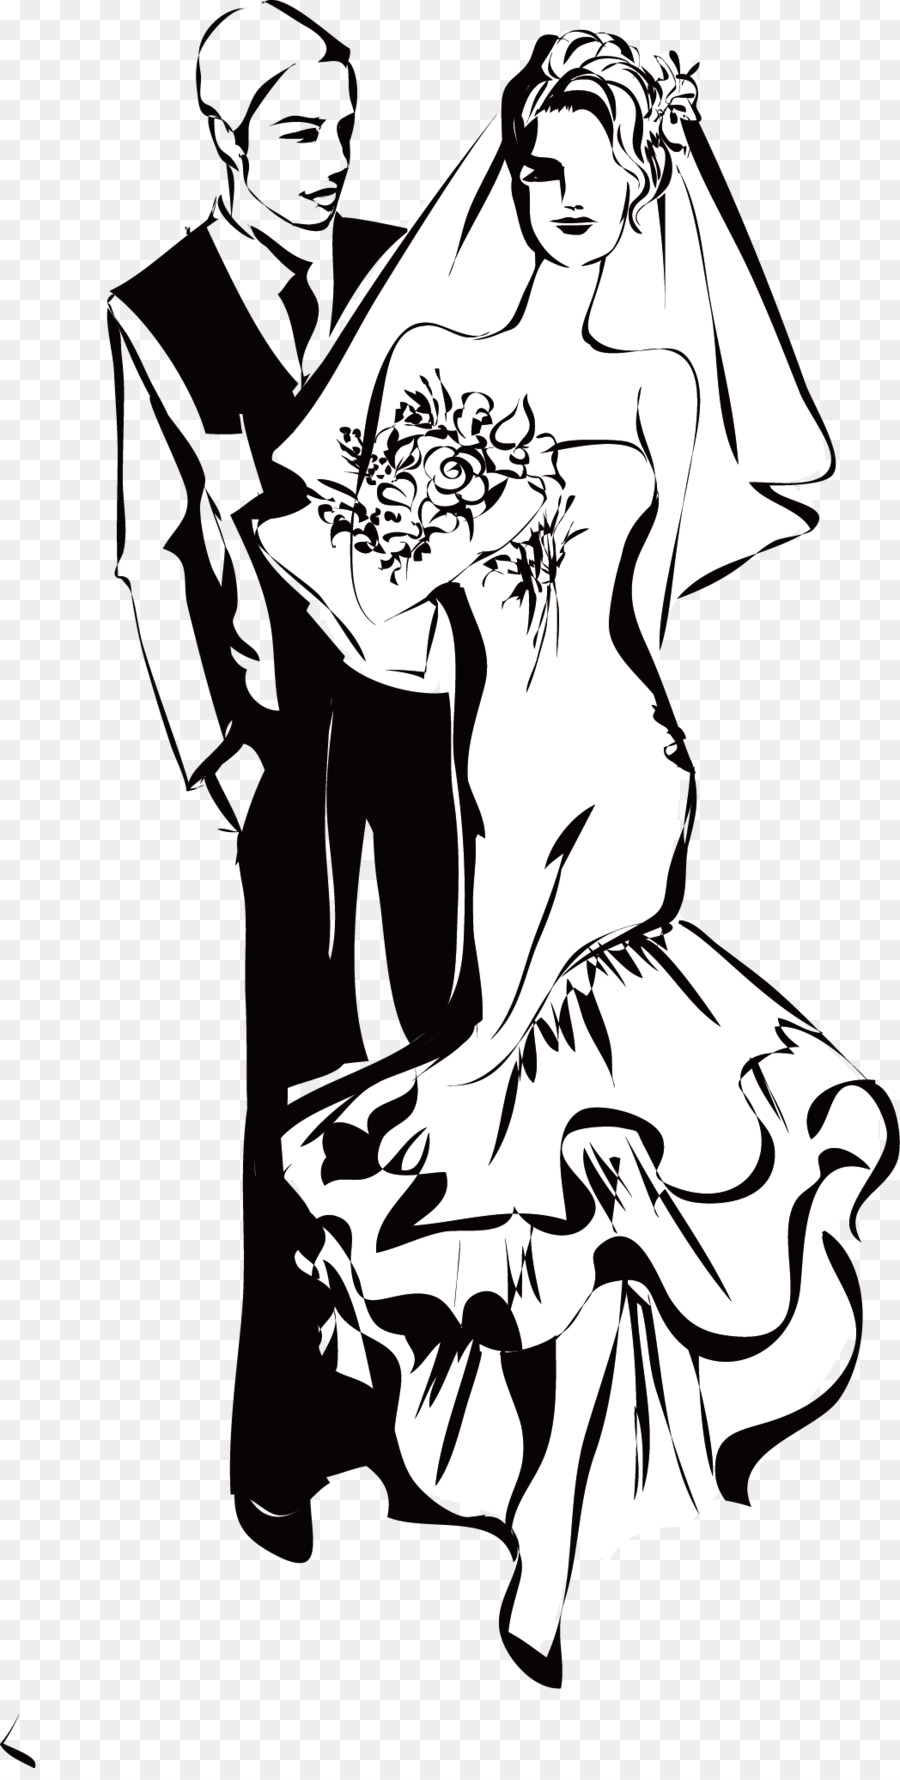 Marriage png clipart hispanic male white female clipart black and white stock Wedding Dress Drawing png download - 1048*2059 - Free ... clipart black and white stock